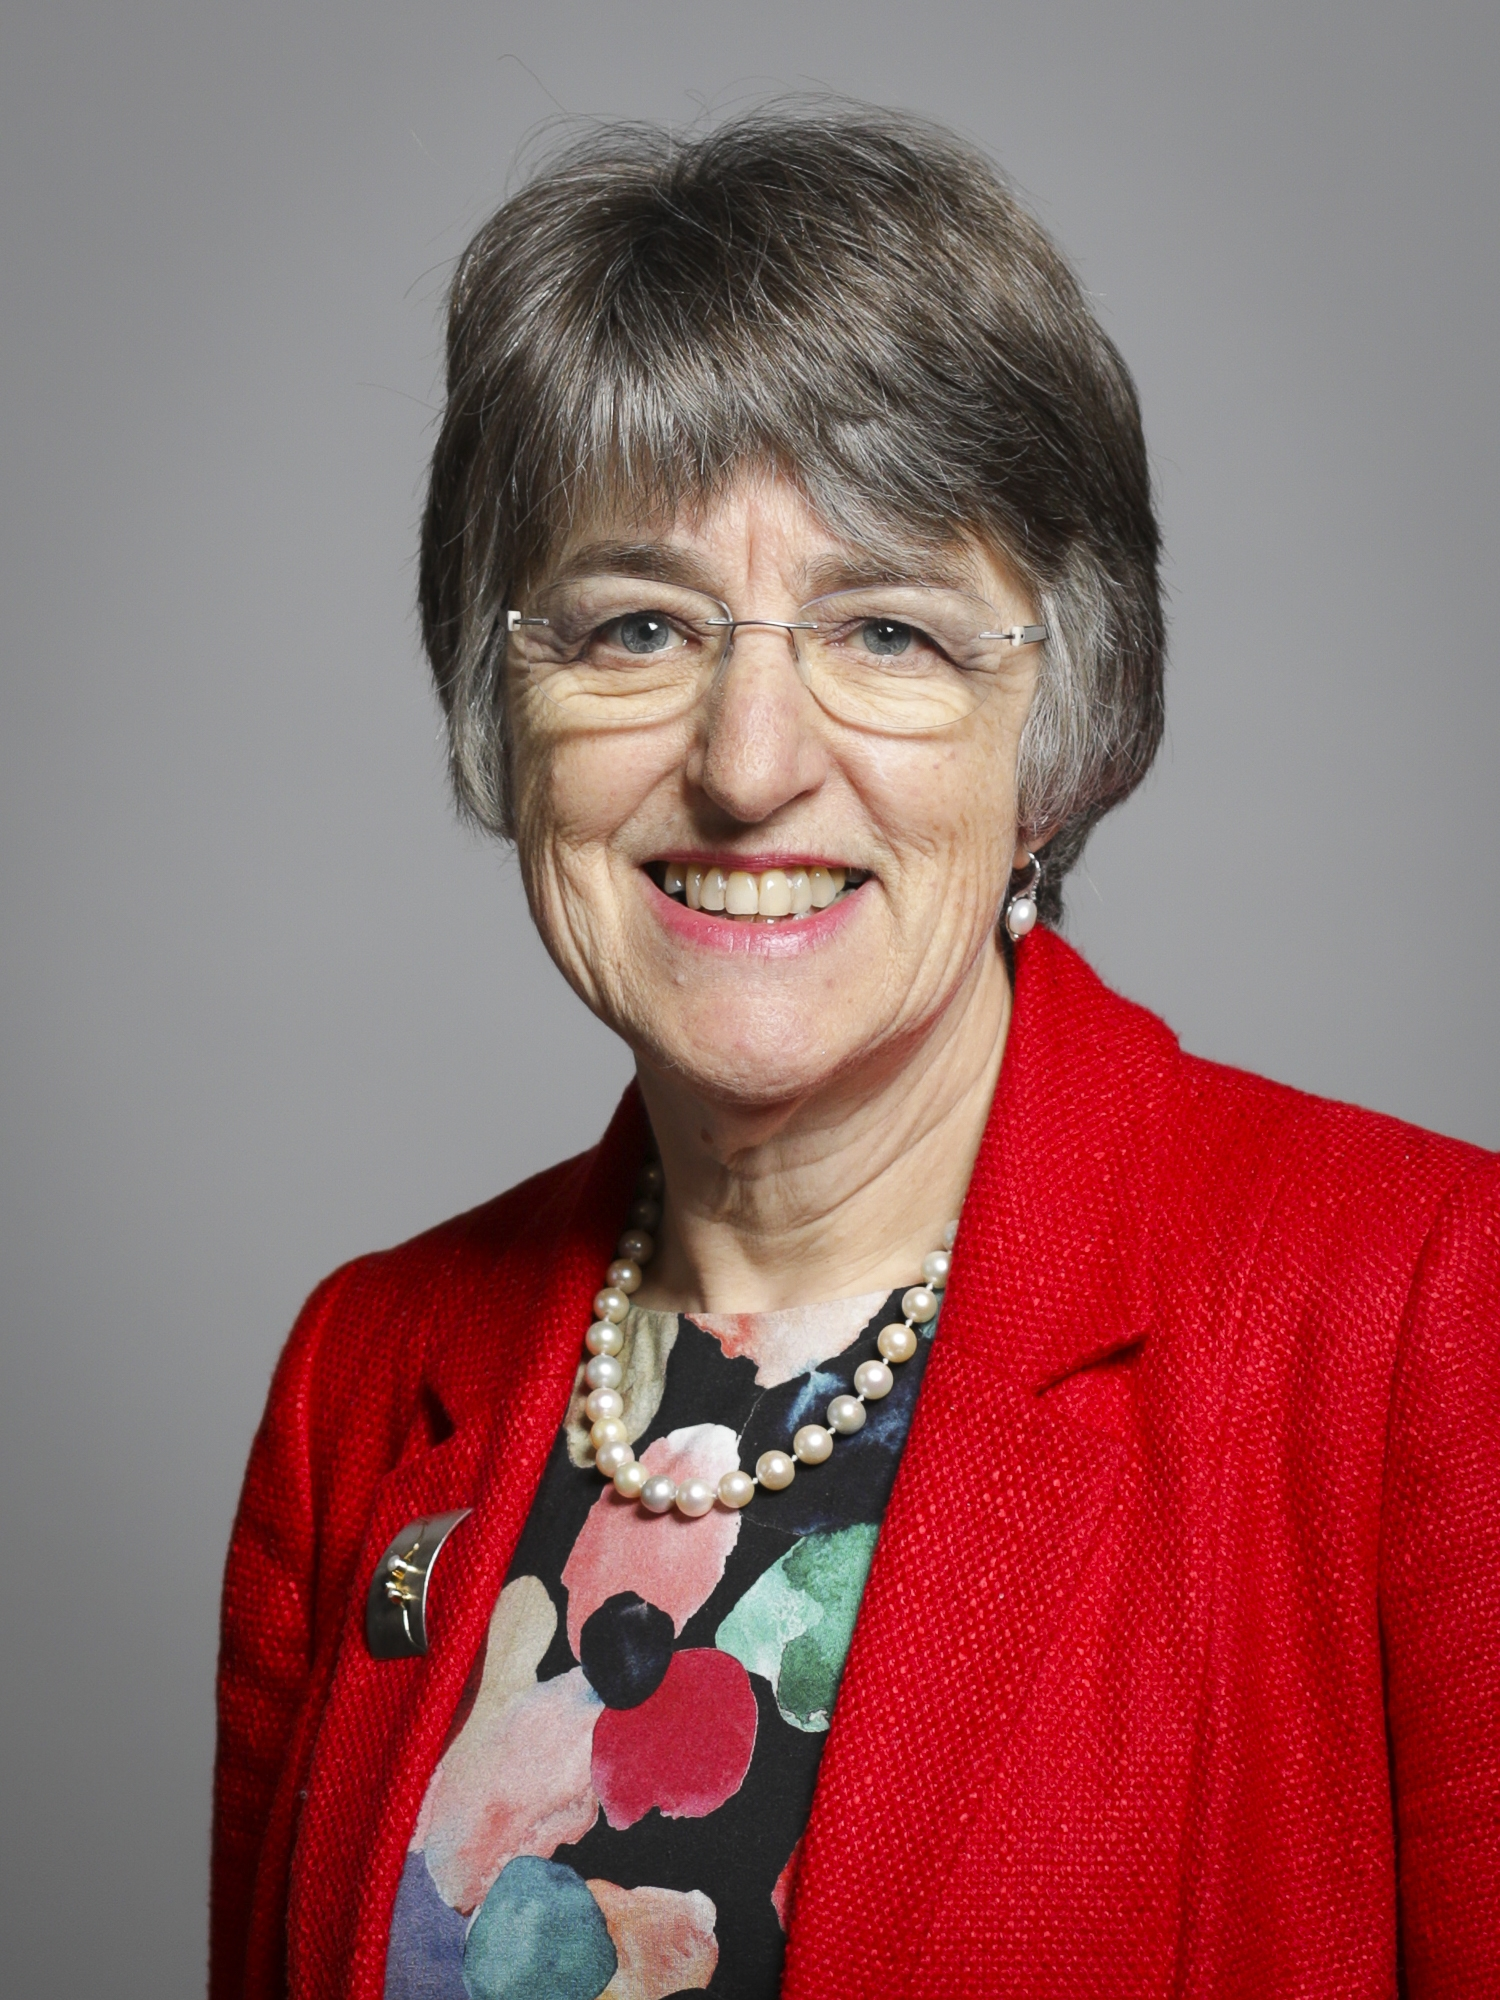 Baroness Finlay, The Chair of the Board of Trustees